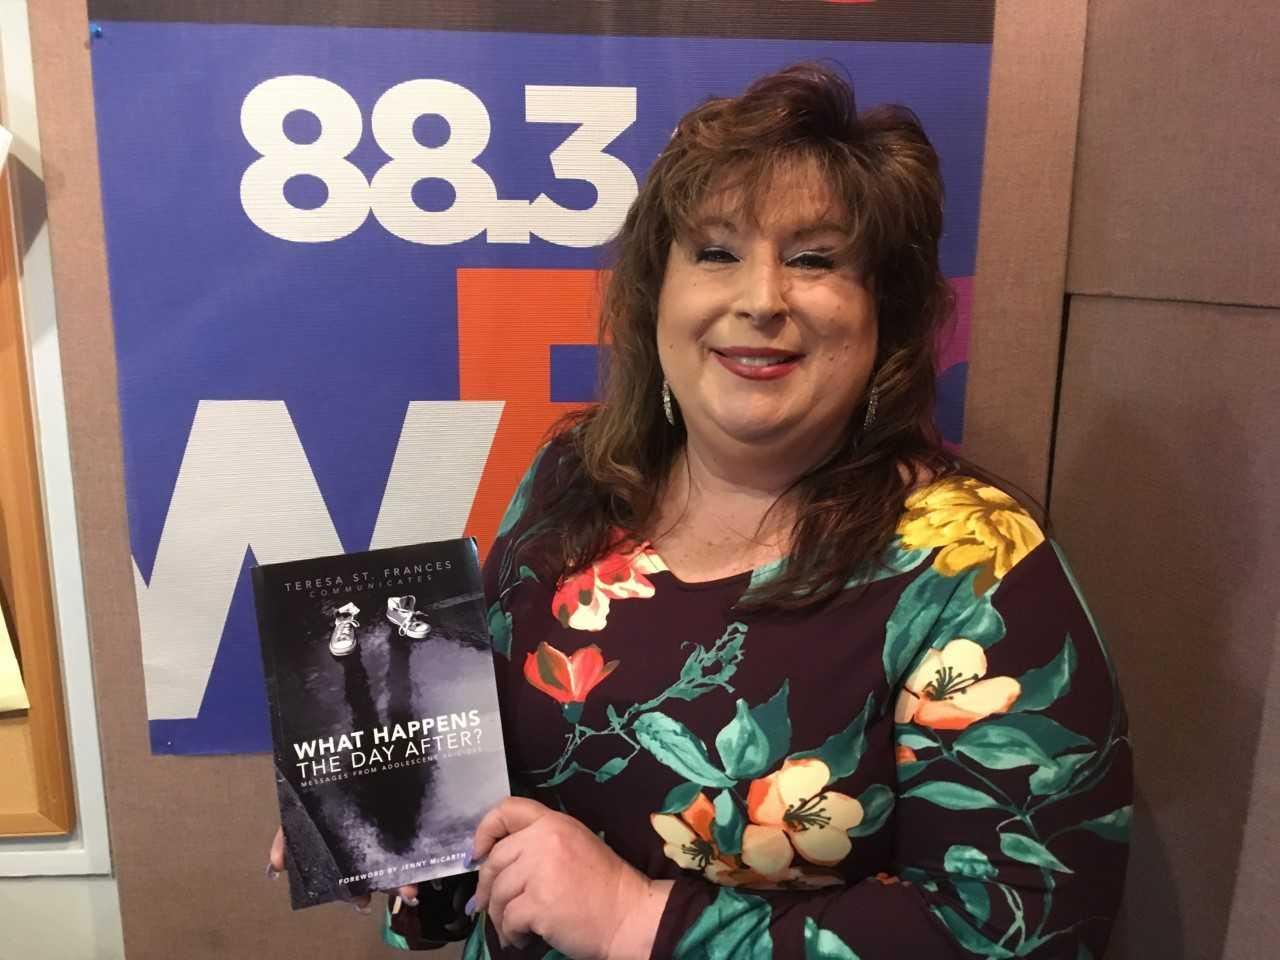 Psychic Medium and Author Teresa St  Frances Wants to Save Lives | WBGO